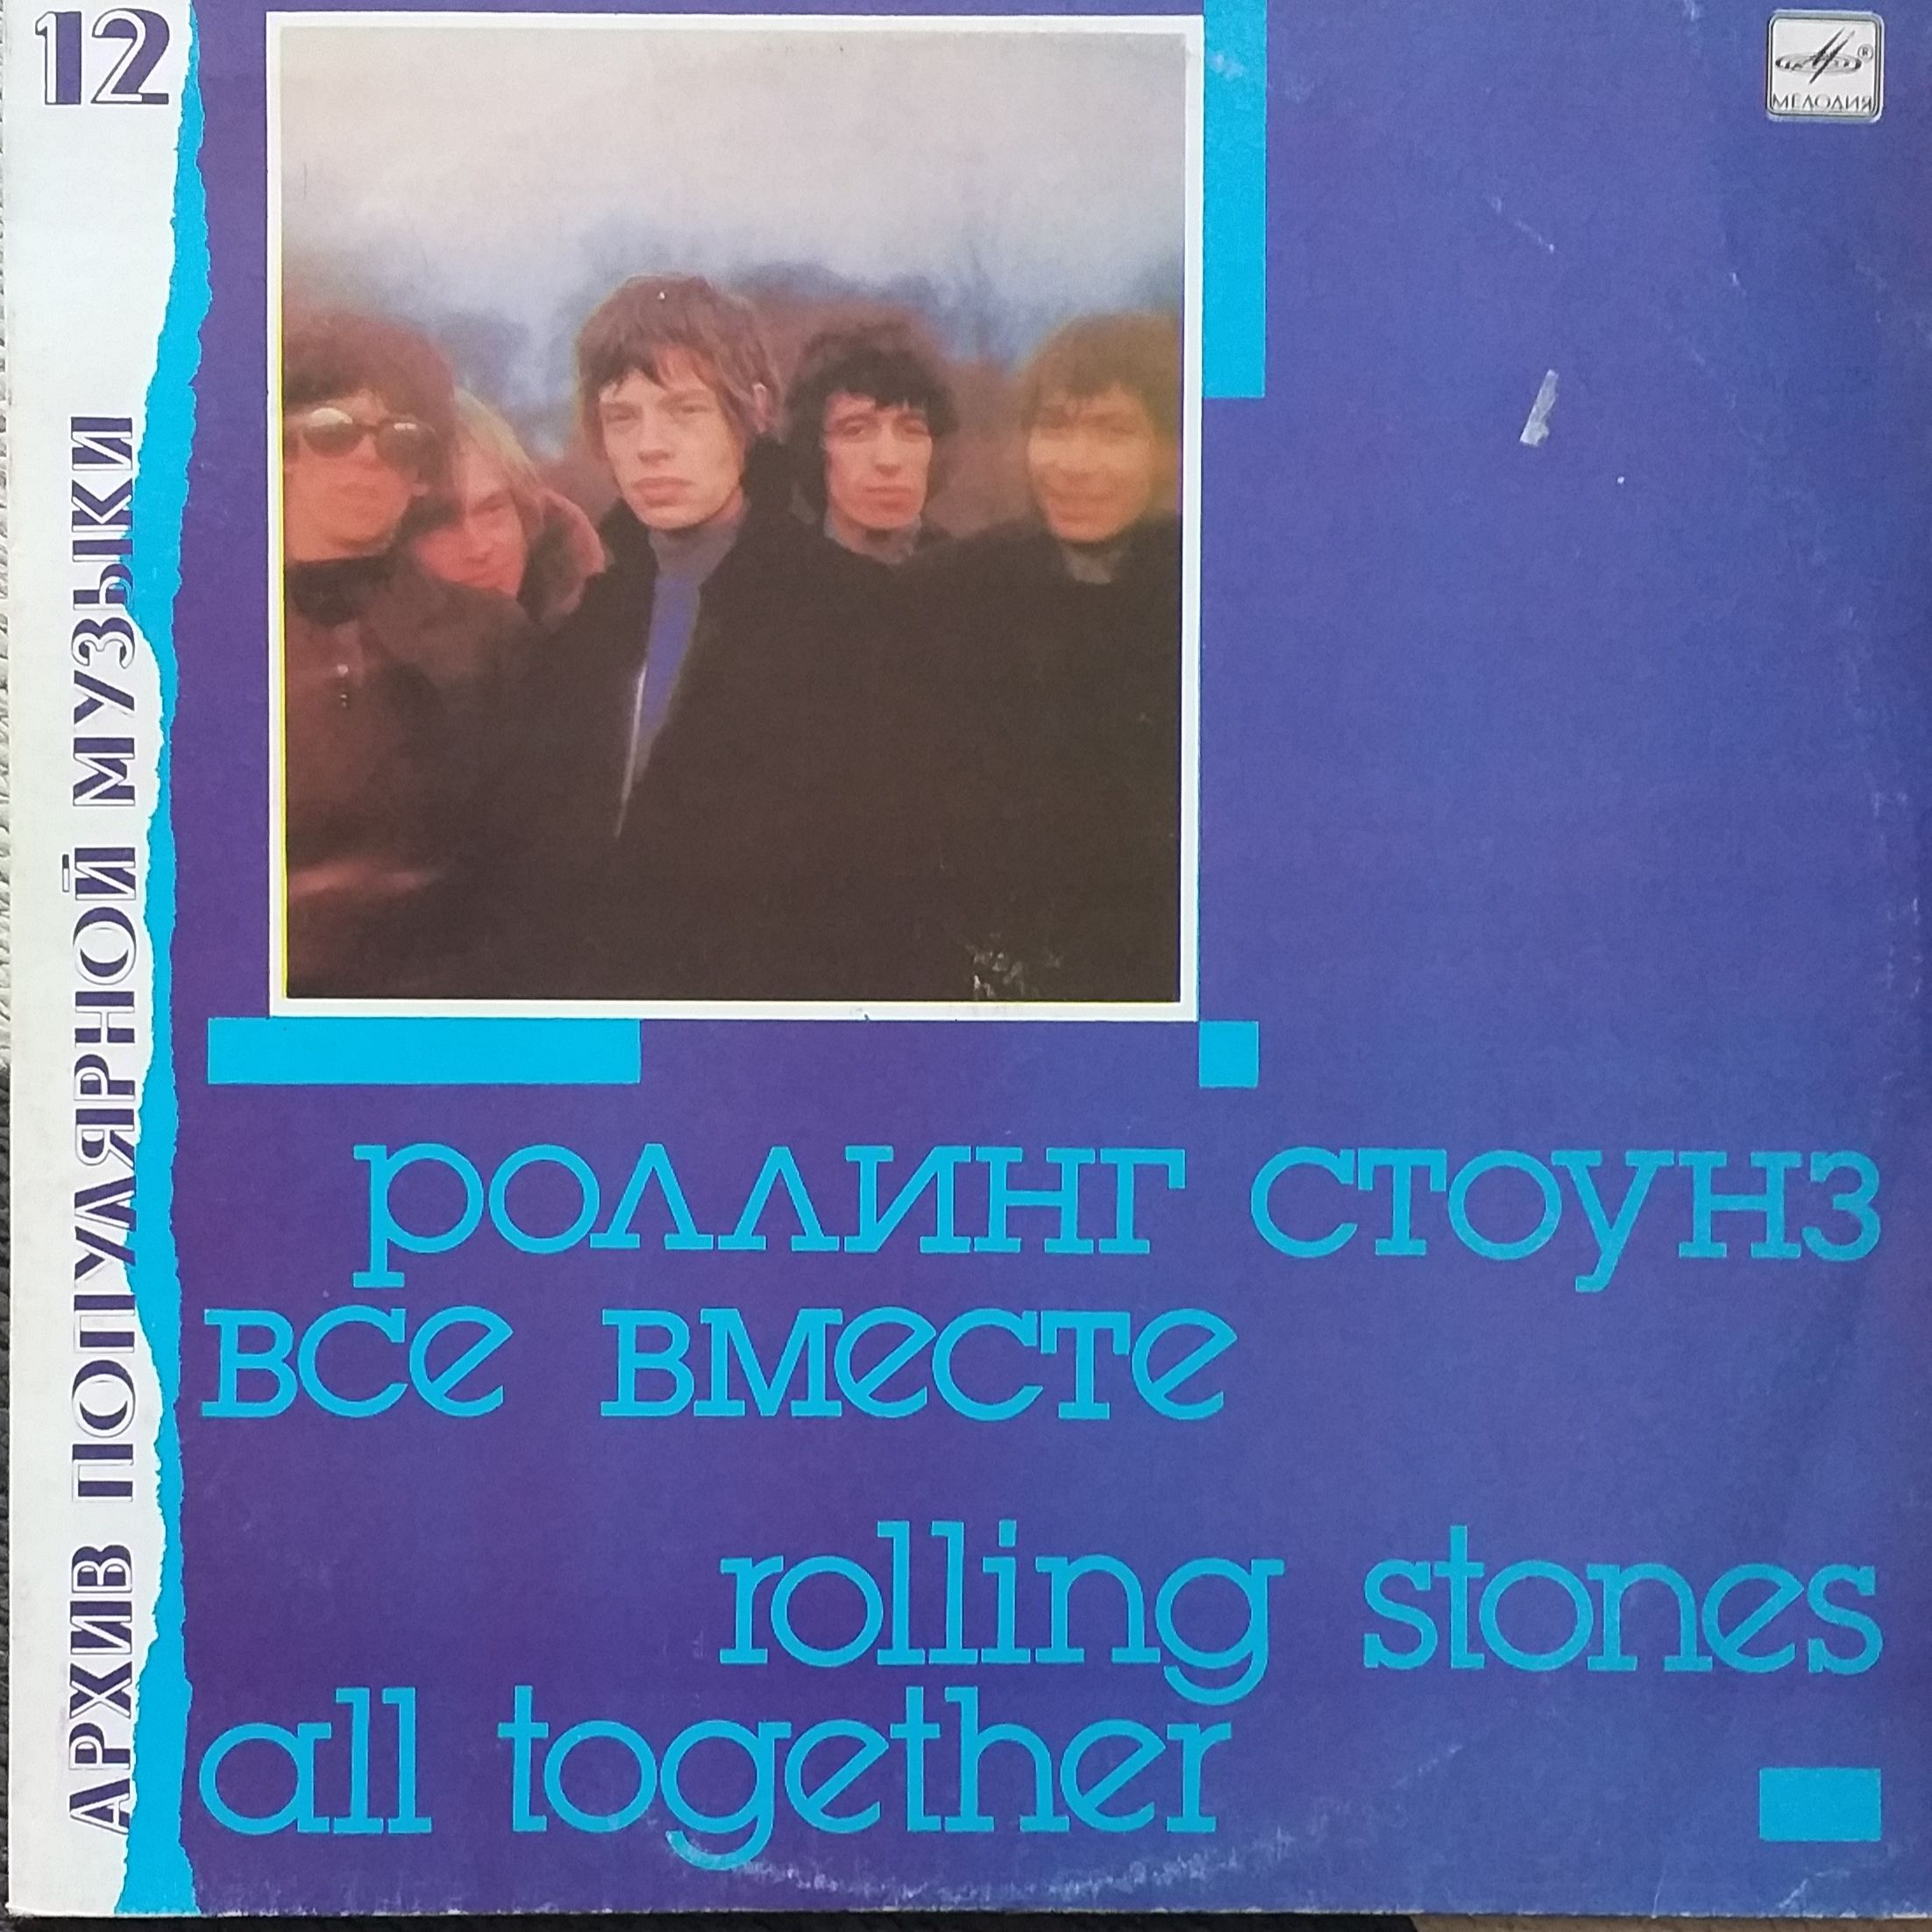 The Rolling Stones All together LP undefined